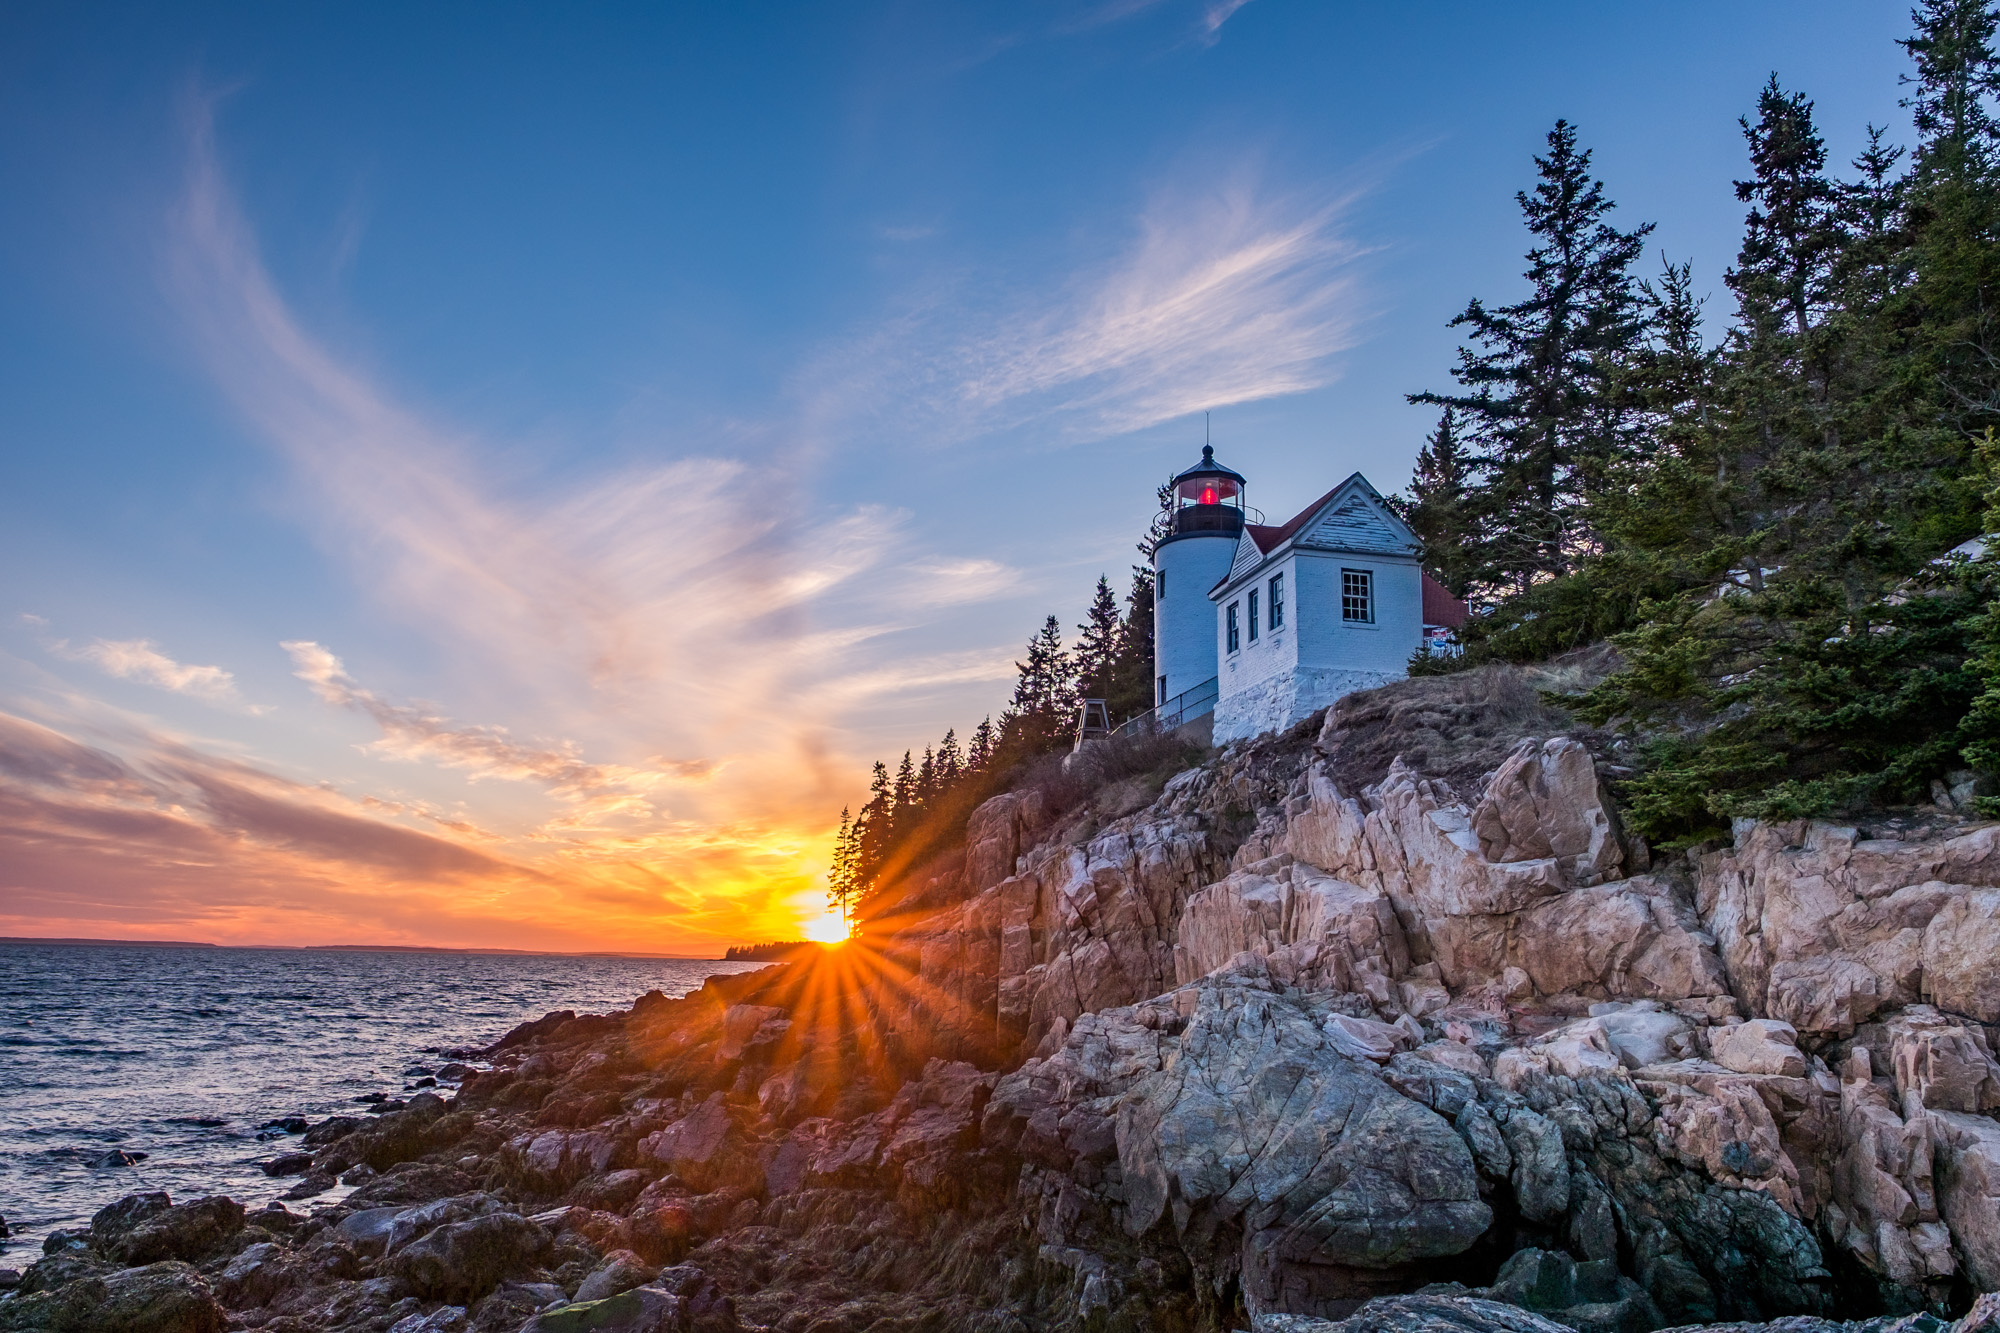 The Bass Harbor Lighthouse looks great under any light, but is especially beautiful at sunset.